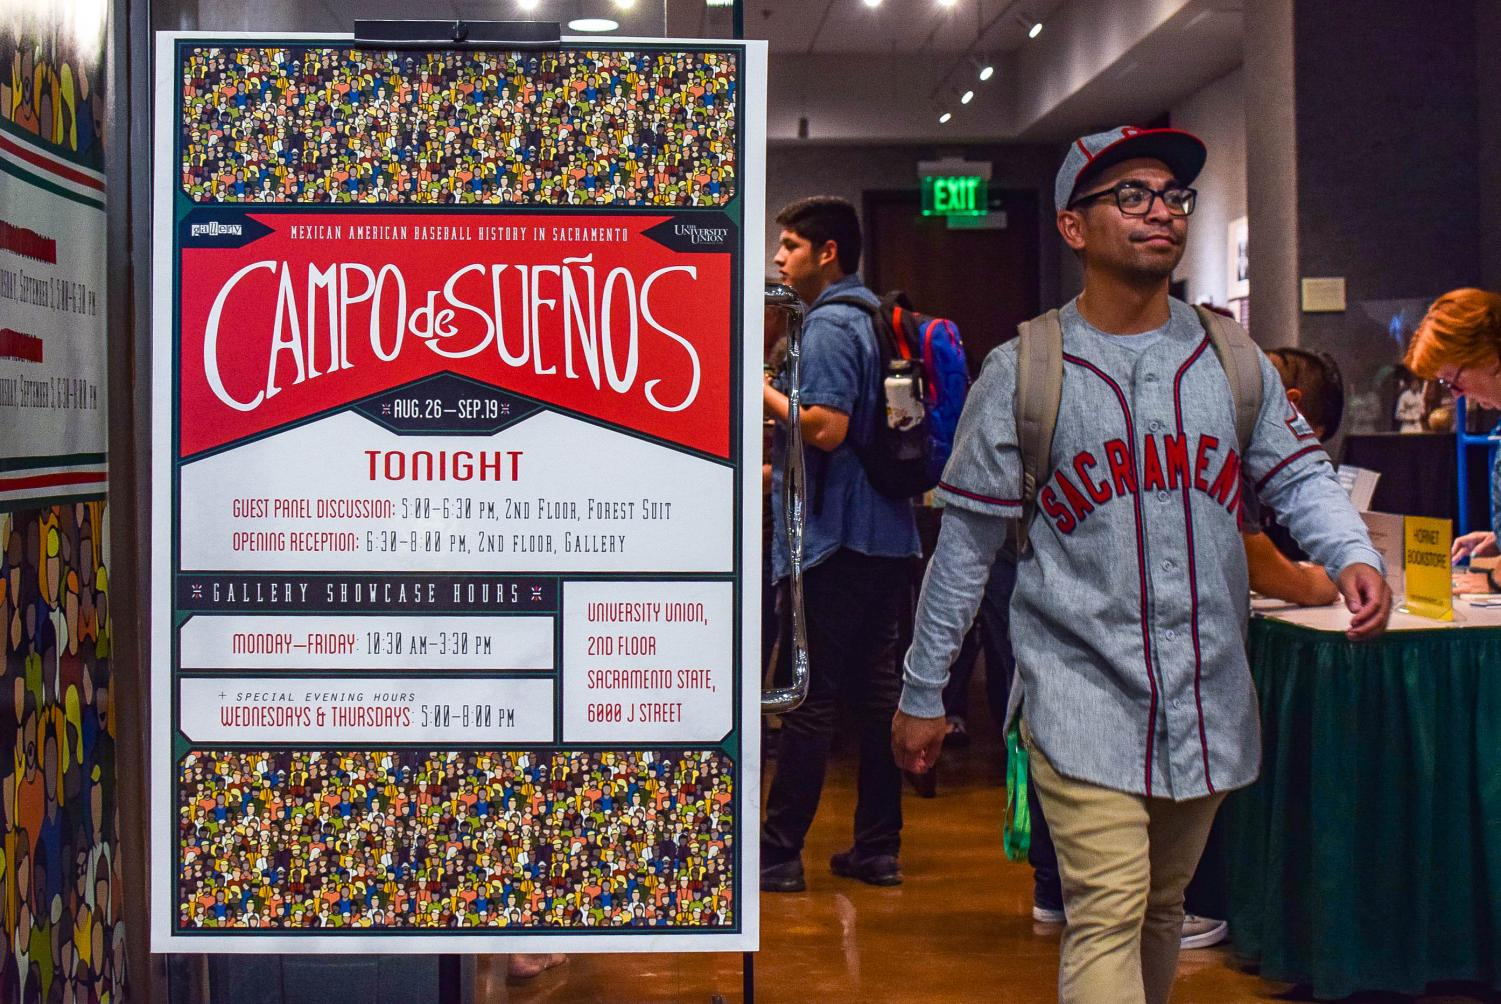 The front sign of Sac State's 'Campo de Sueños' exhibit in the University Union Thursday, Sept. 5. The exhibit showcased Mexican American baseball and softball history in Sacramento.